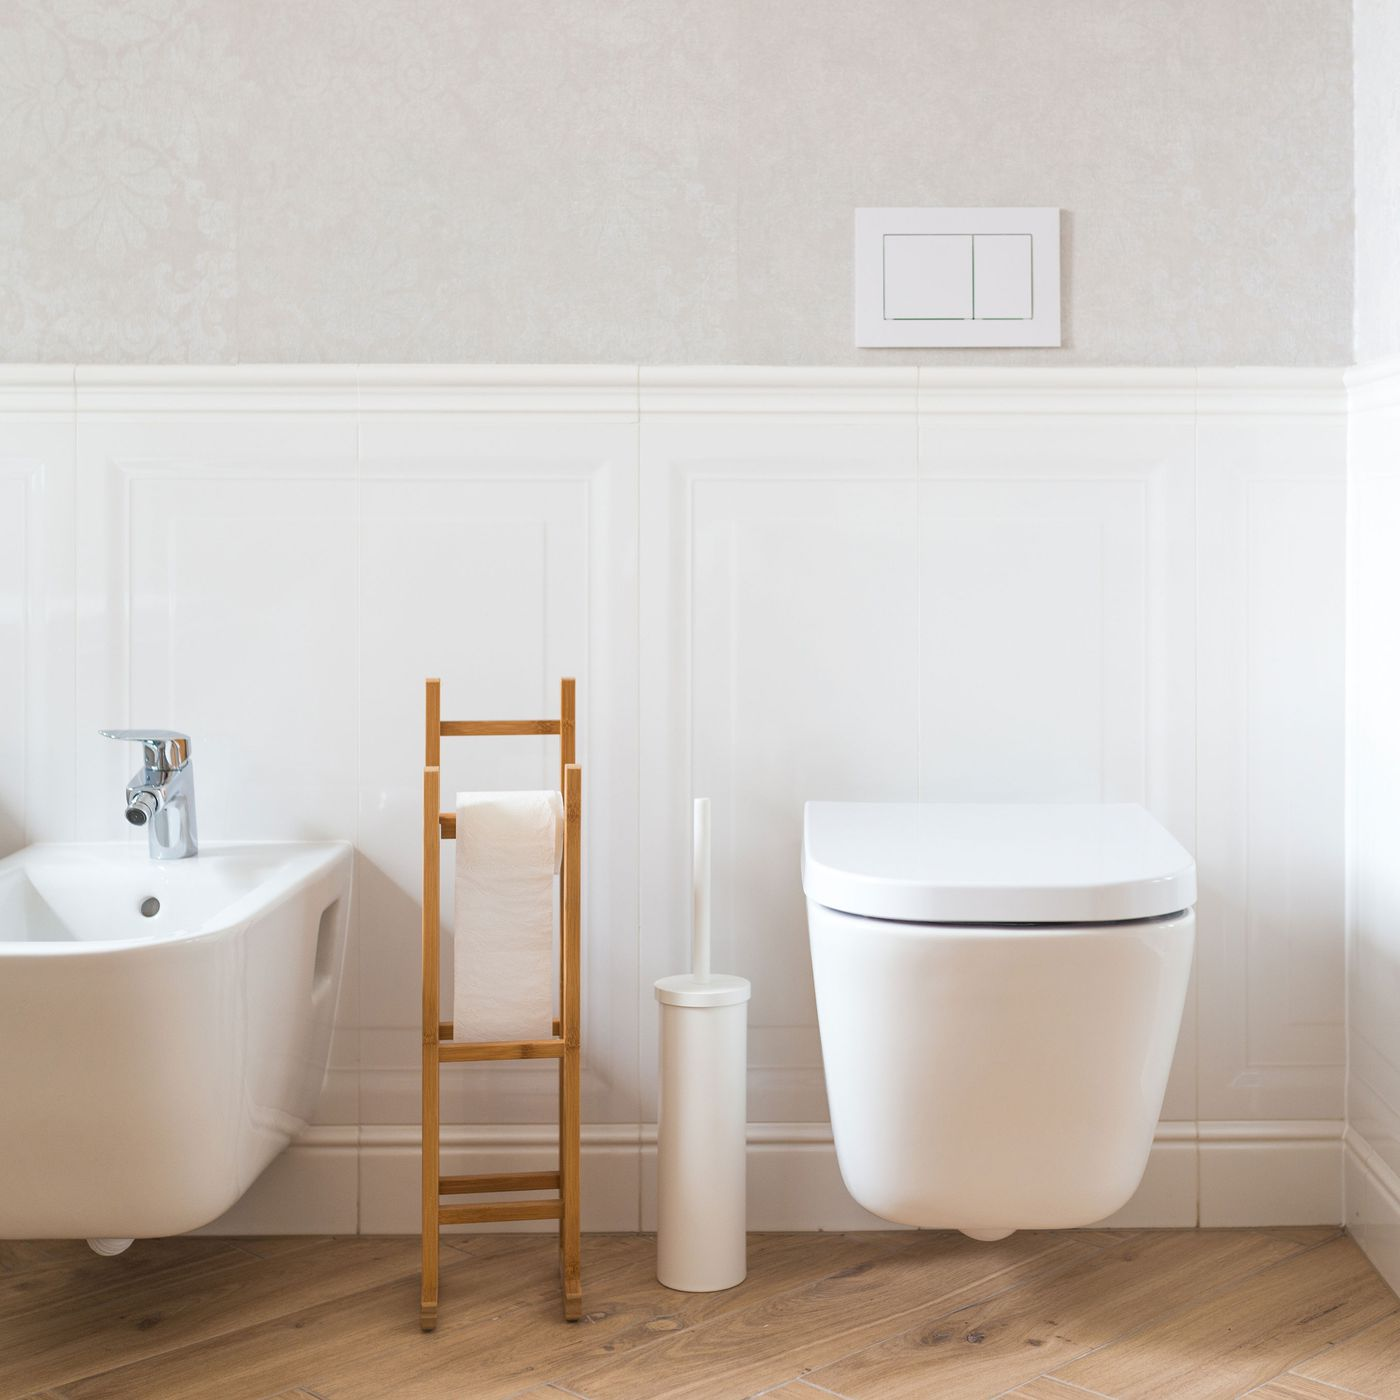 How To Install A Bidet In Your Master Bathroom This Old House